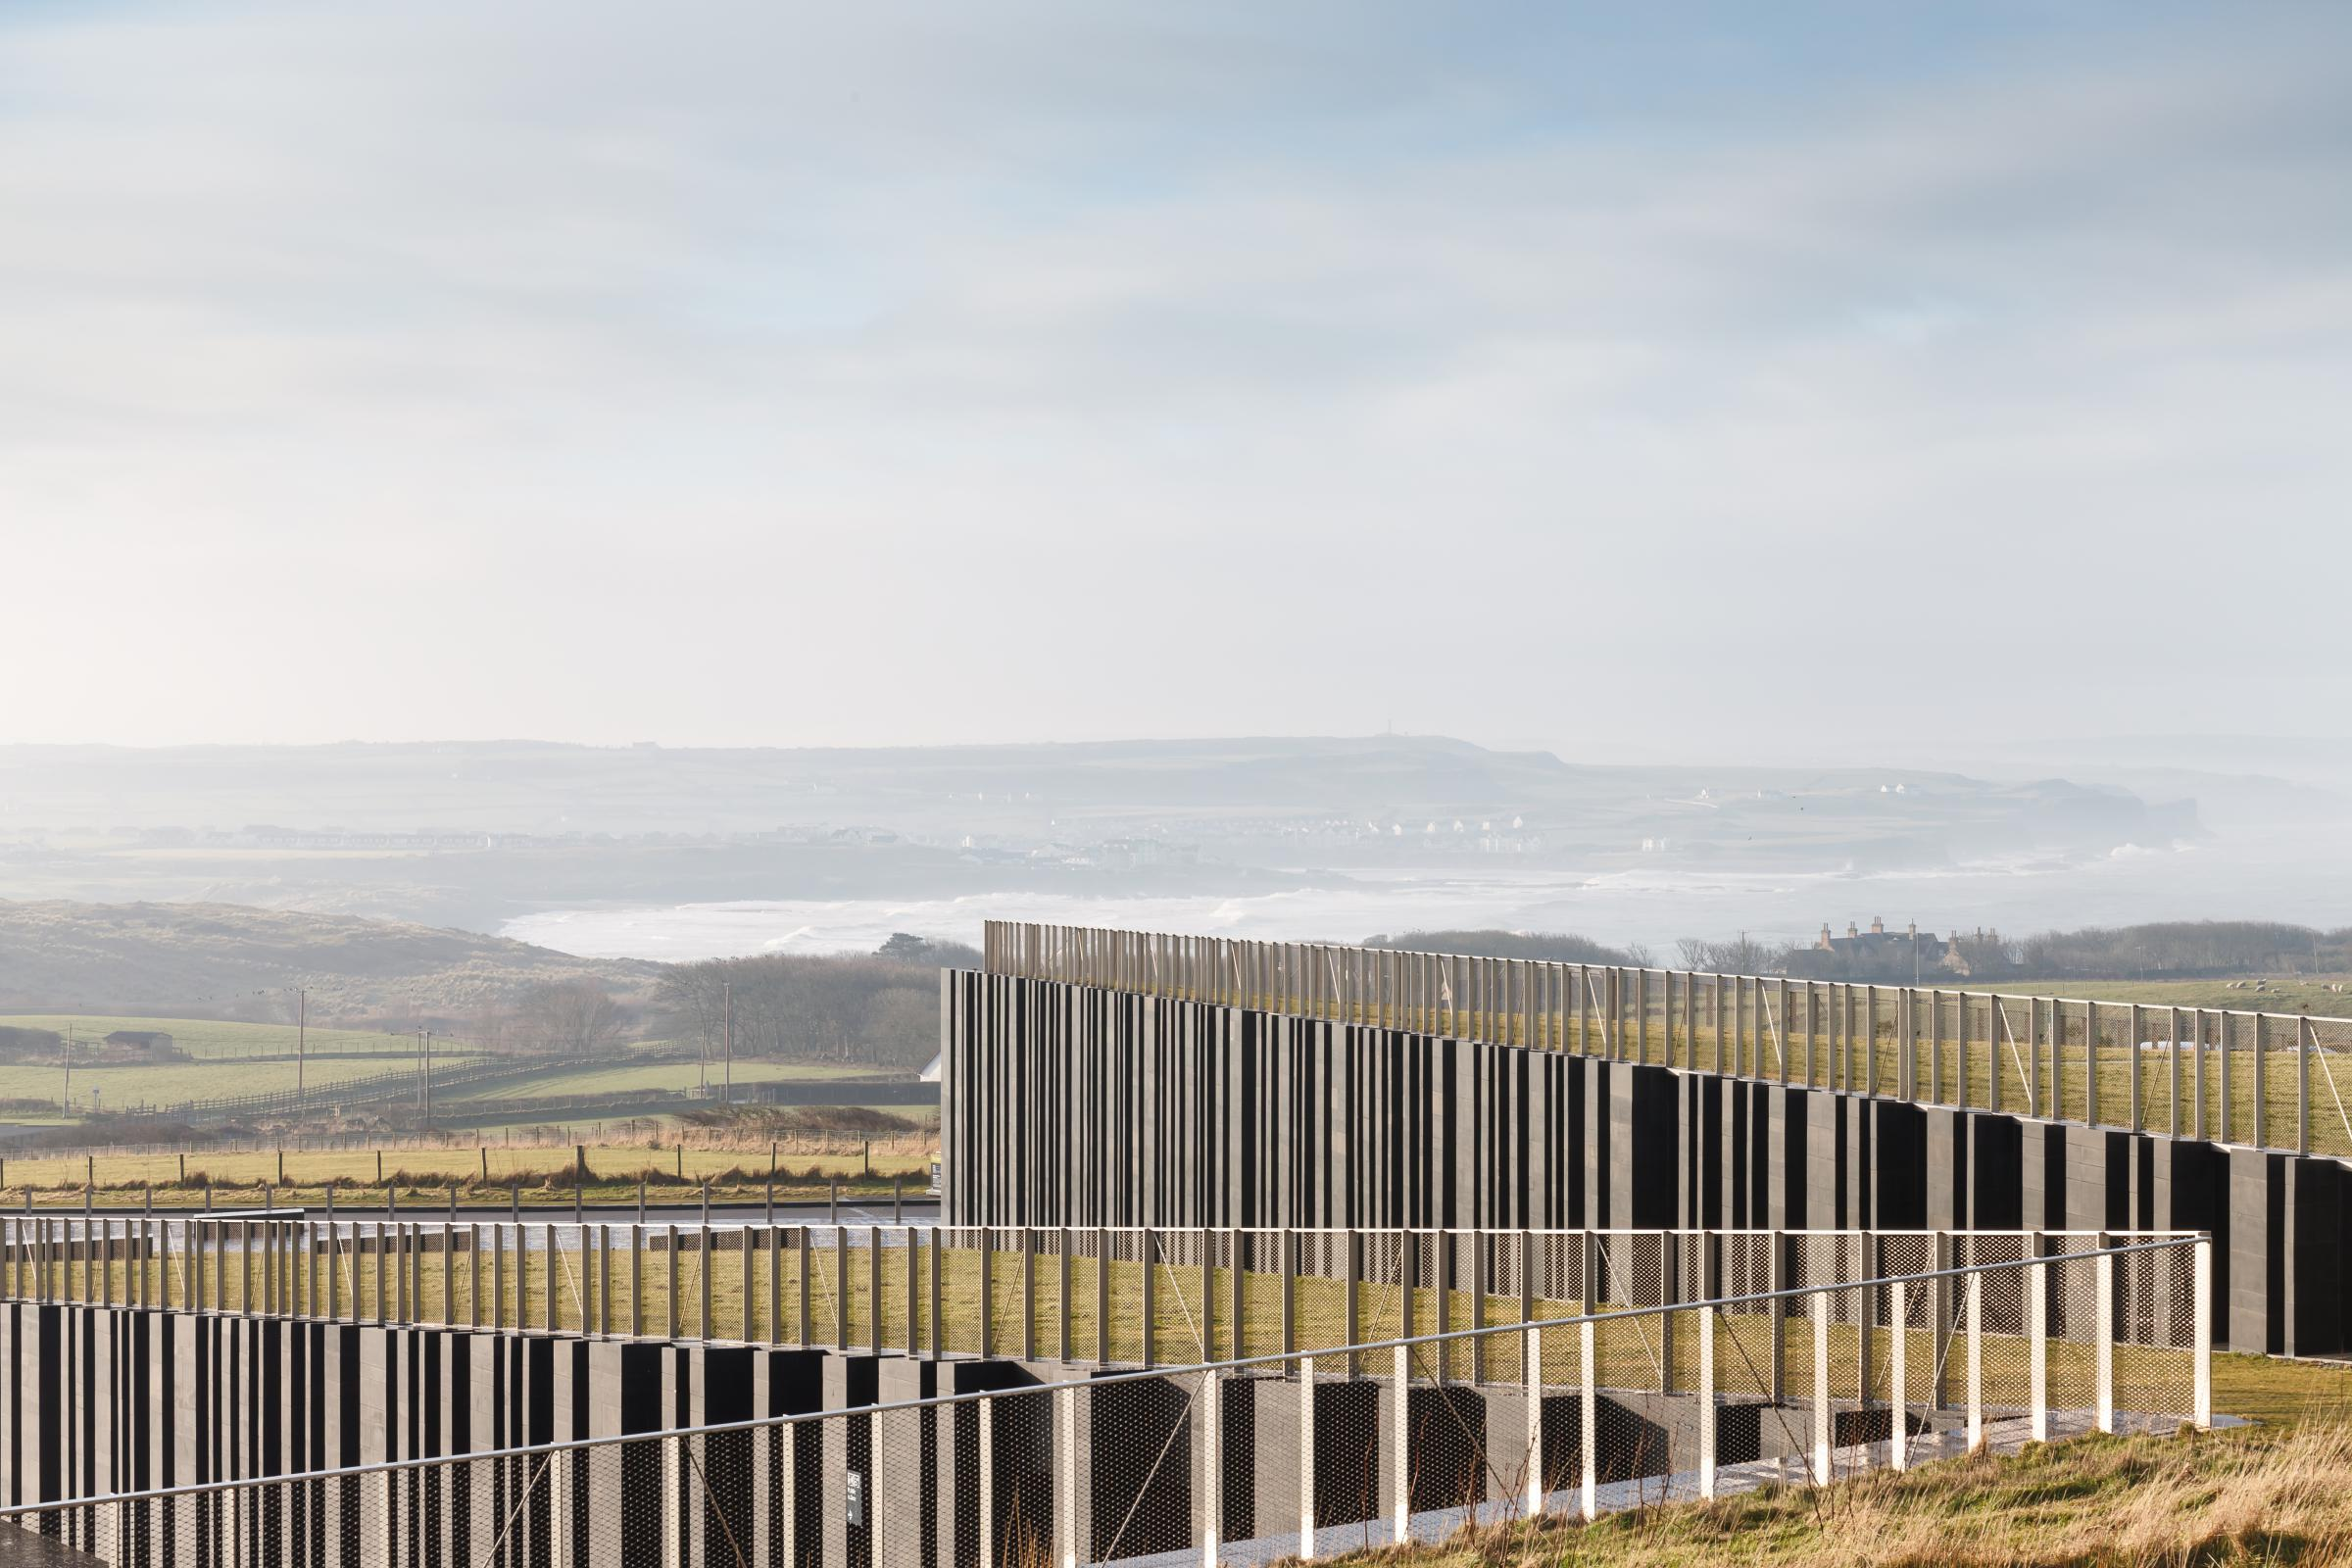 Photograph of Giants Causway Visitor Centre, designed by Heneghan Peng Architects and located in Bushmills, United Kingdom